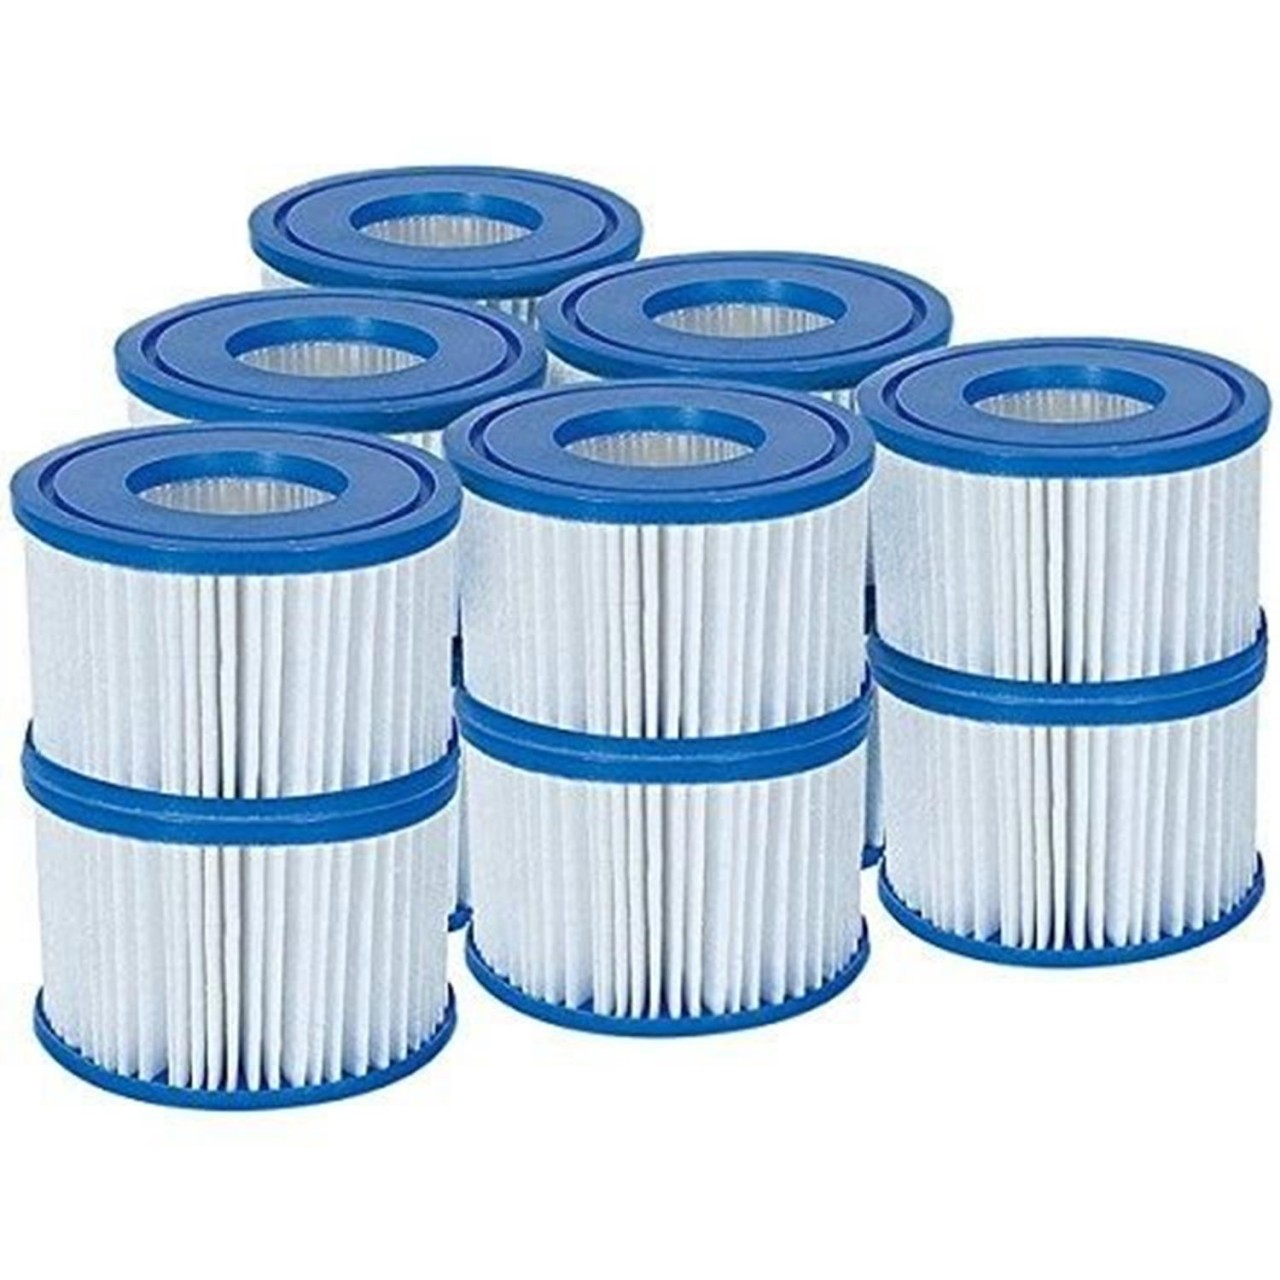 Bestway Filter Cartridge VI für Miami, Vegas, Monaco Lay-Z-Spa 58323 12 Stück